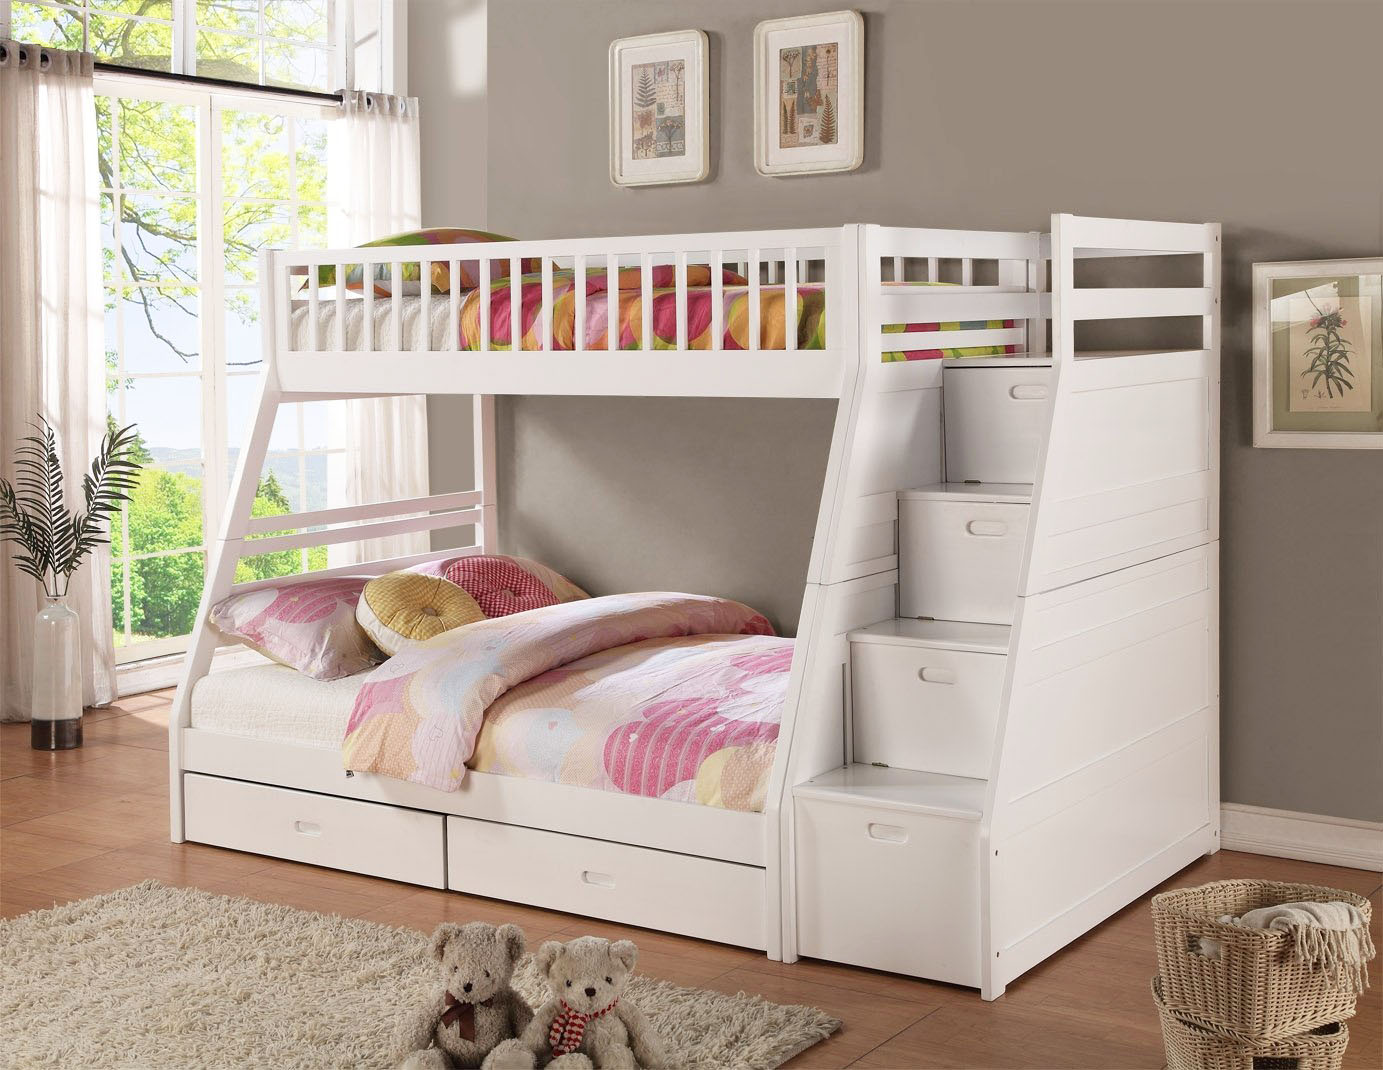 3 important reasons to purchase white bunk beds with stairs